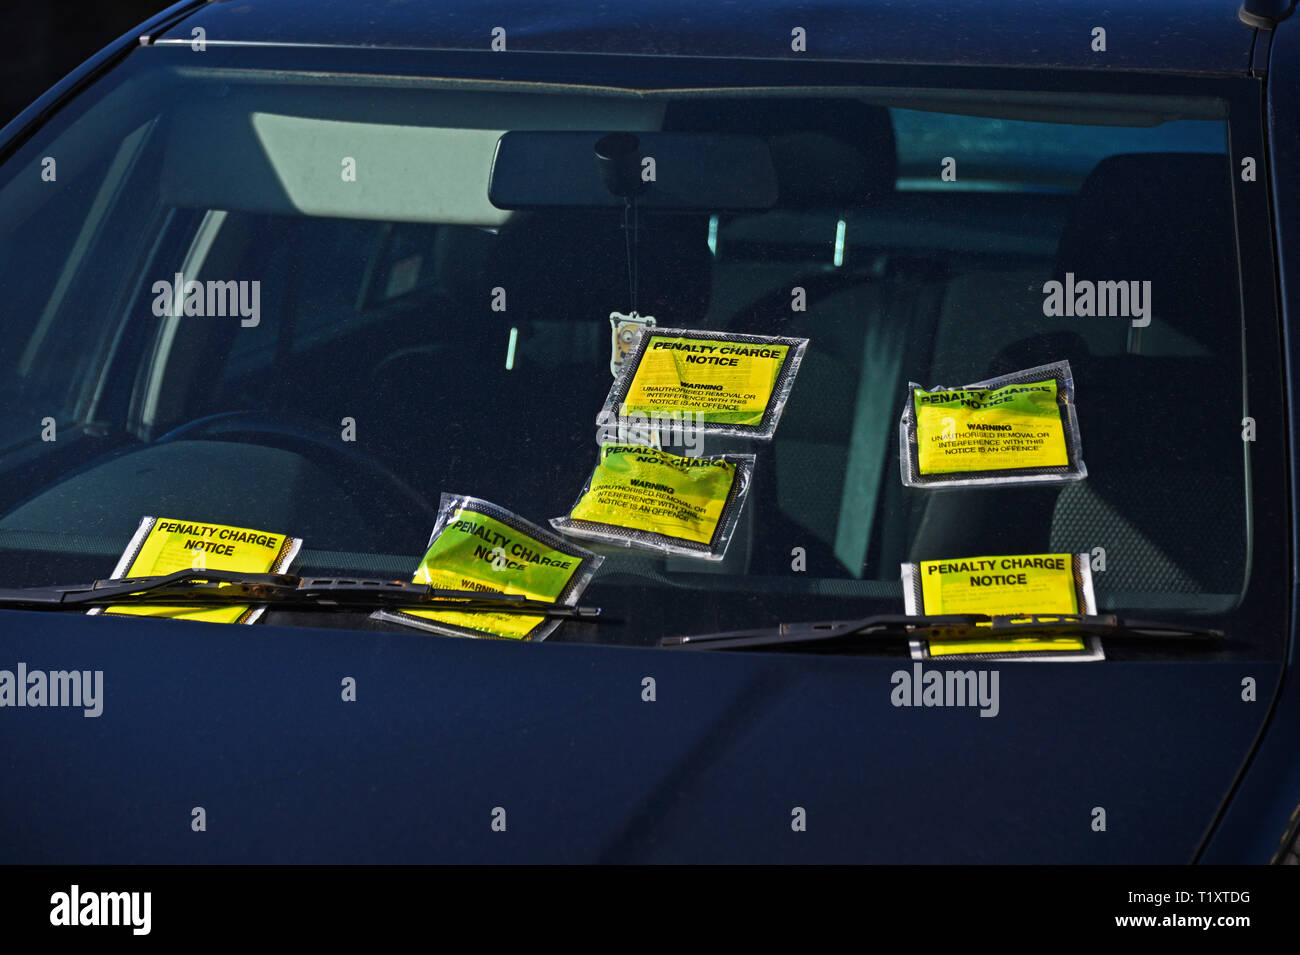 Windscreen of illegally parked car on double-yellow lines with six penalty charge notices. Parkside Road, Kendal, Cumbria, England, United Kingdom, Eu Stock Photo